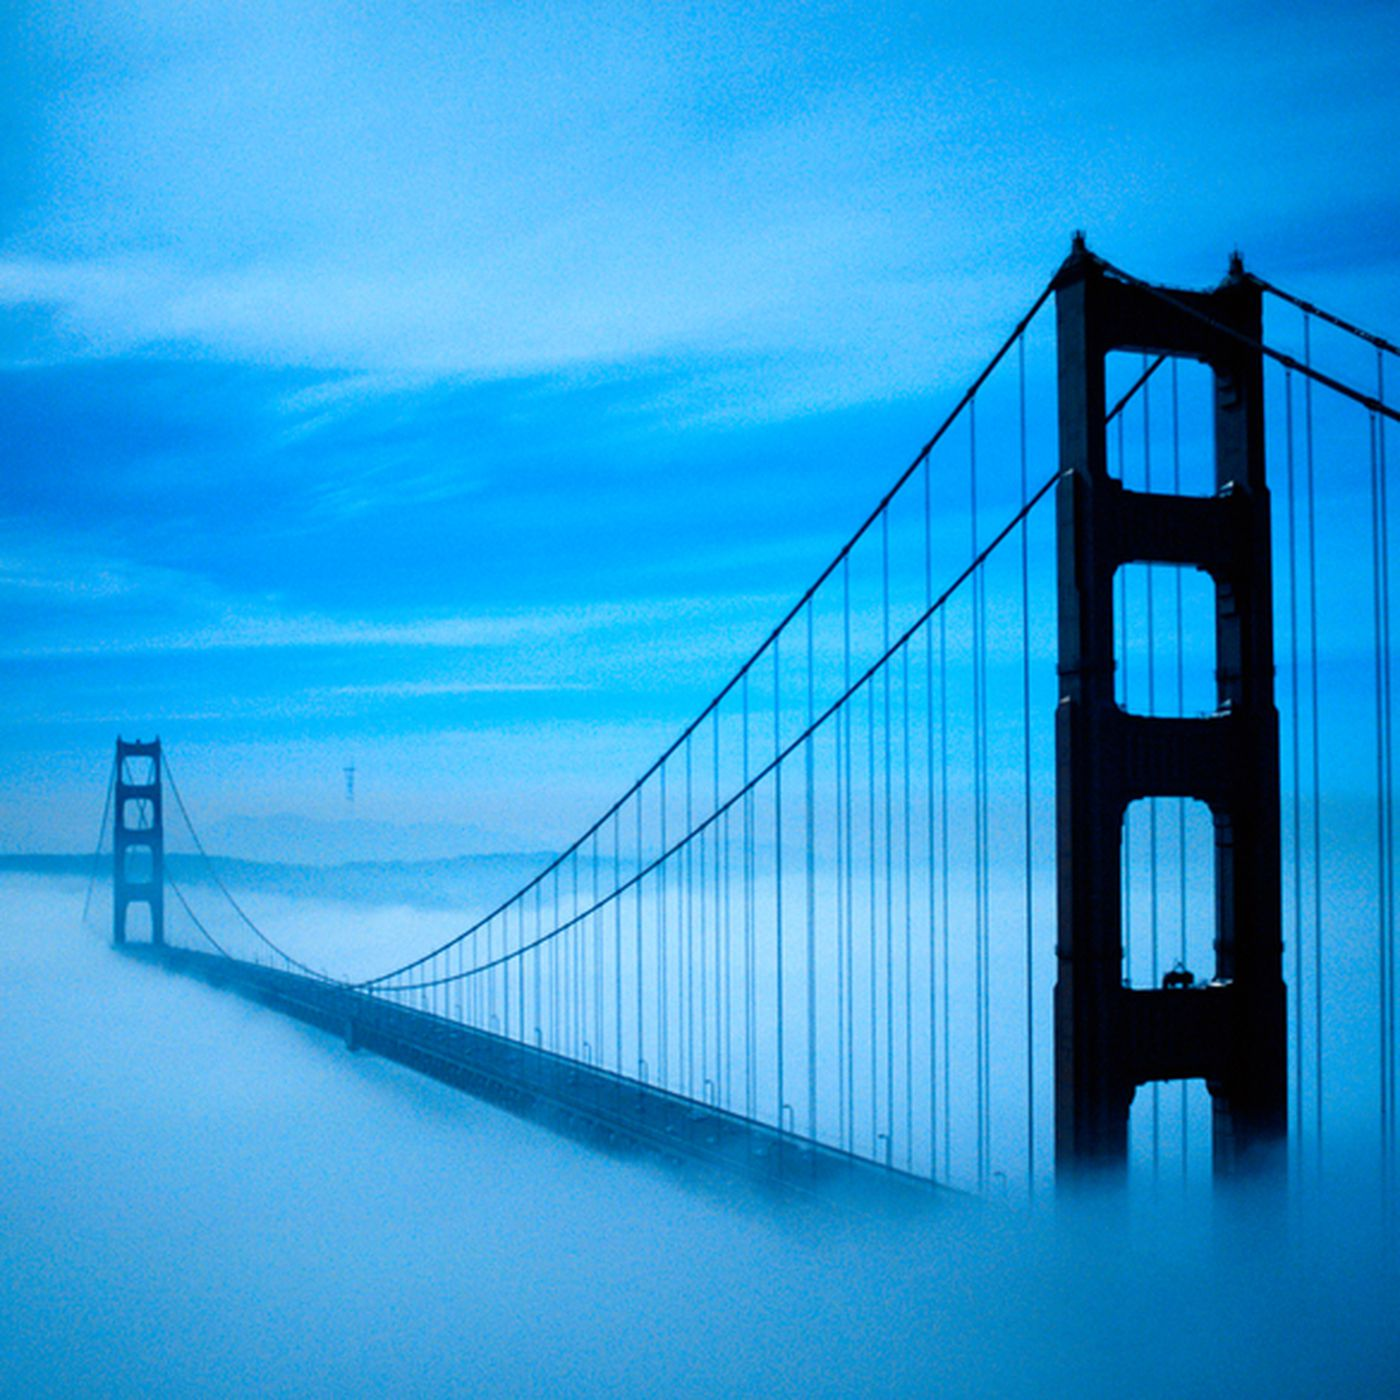 San Francisco Bay Area S Most Haunted Spots Curbed Sf